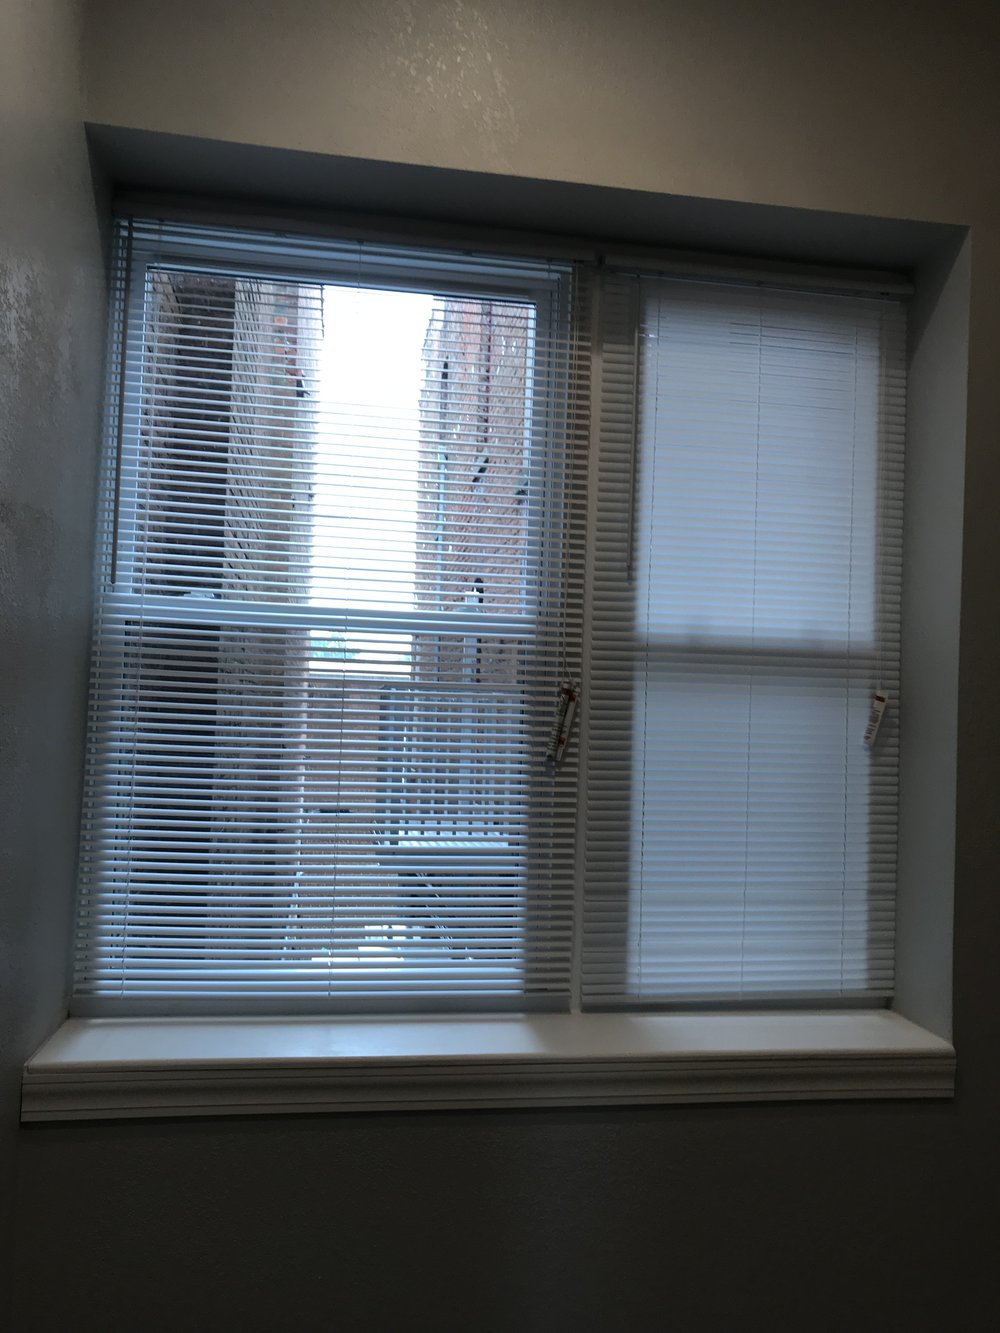 Bedroom Windows - Wired for Tenant Provided AC